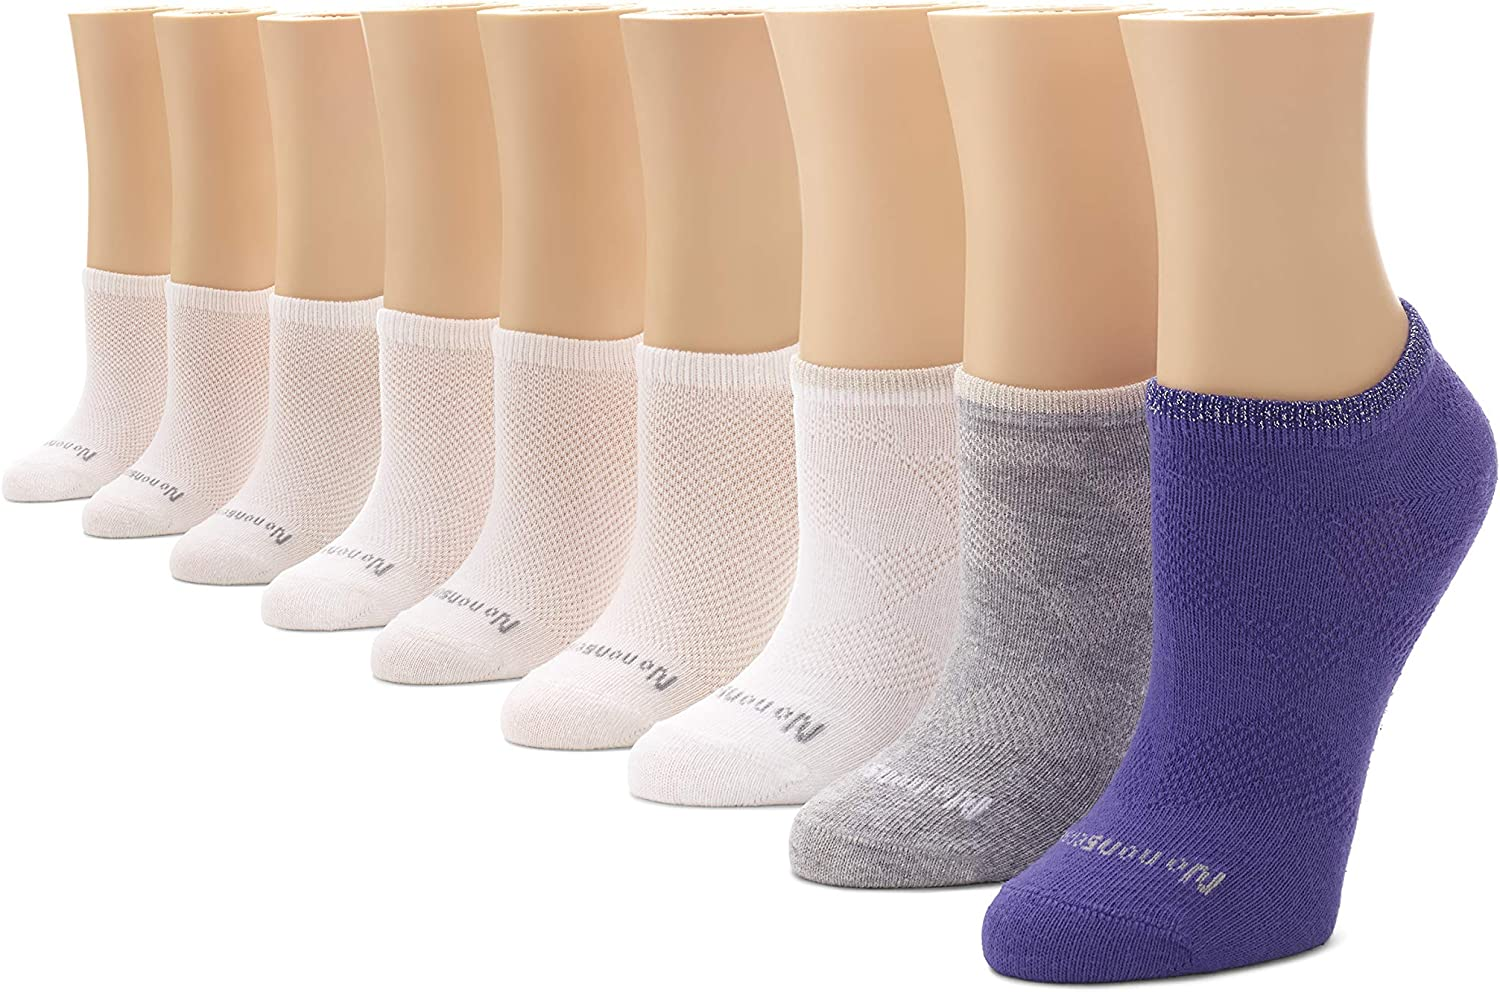 No Nonsense womens Soft and Breathable Cushioned No Show Liner Sock, 9 Pair Pack Socks, Assorted